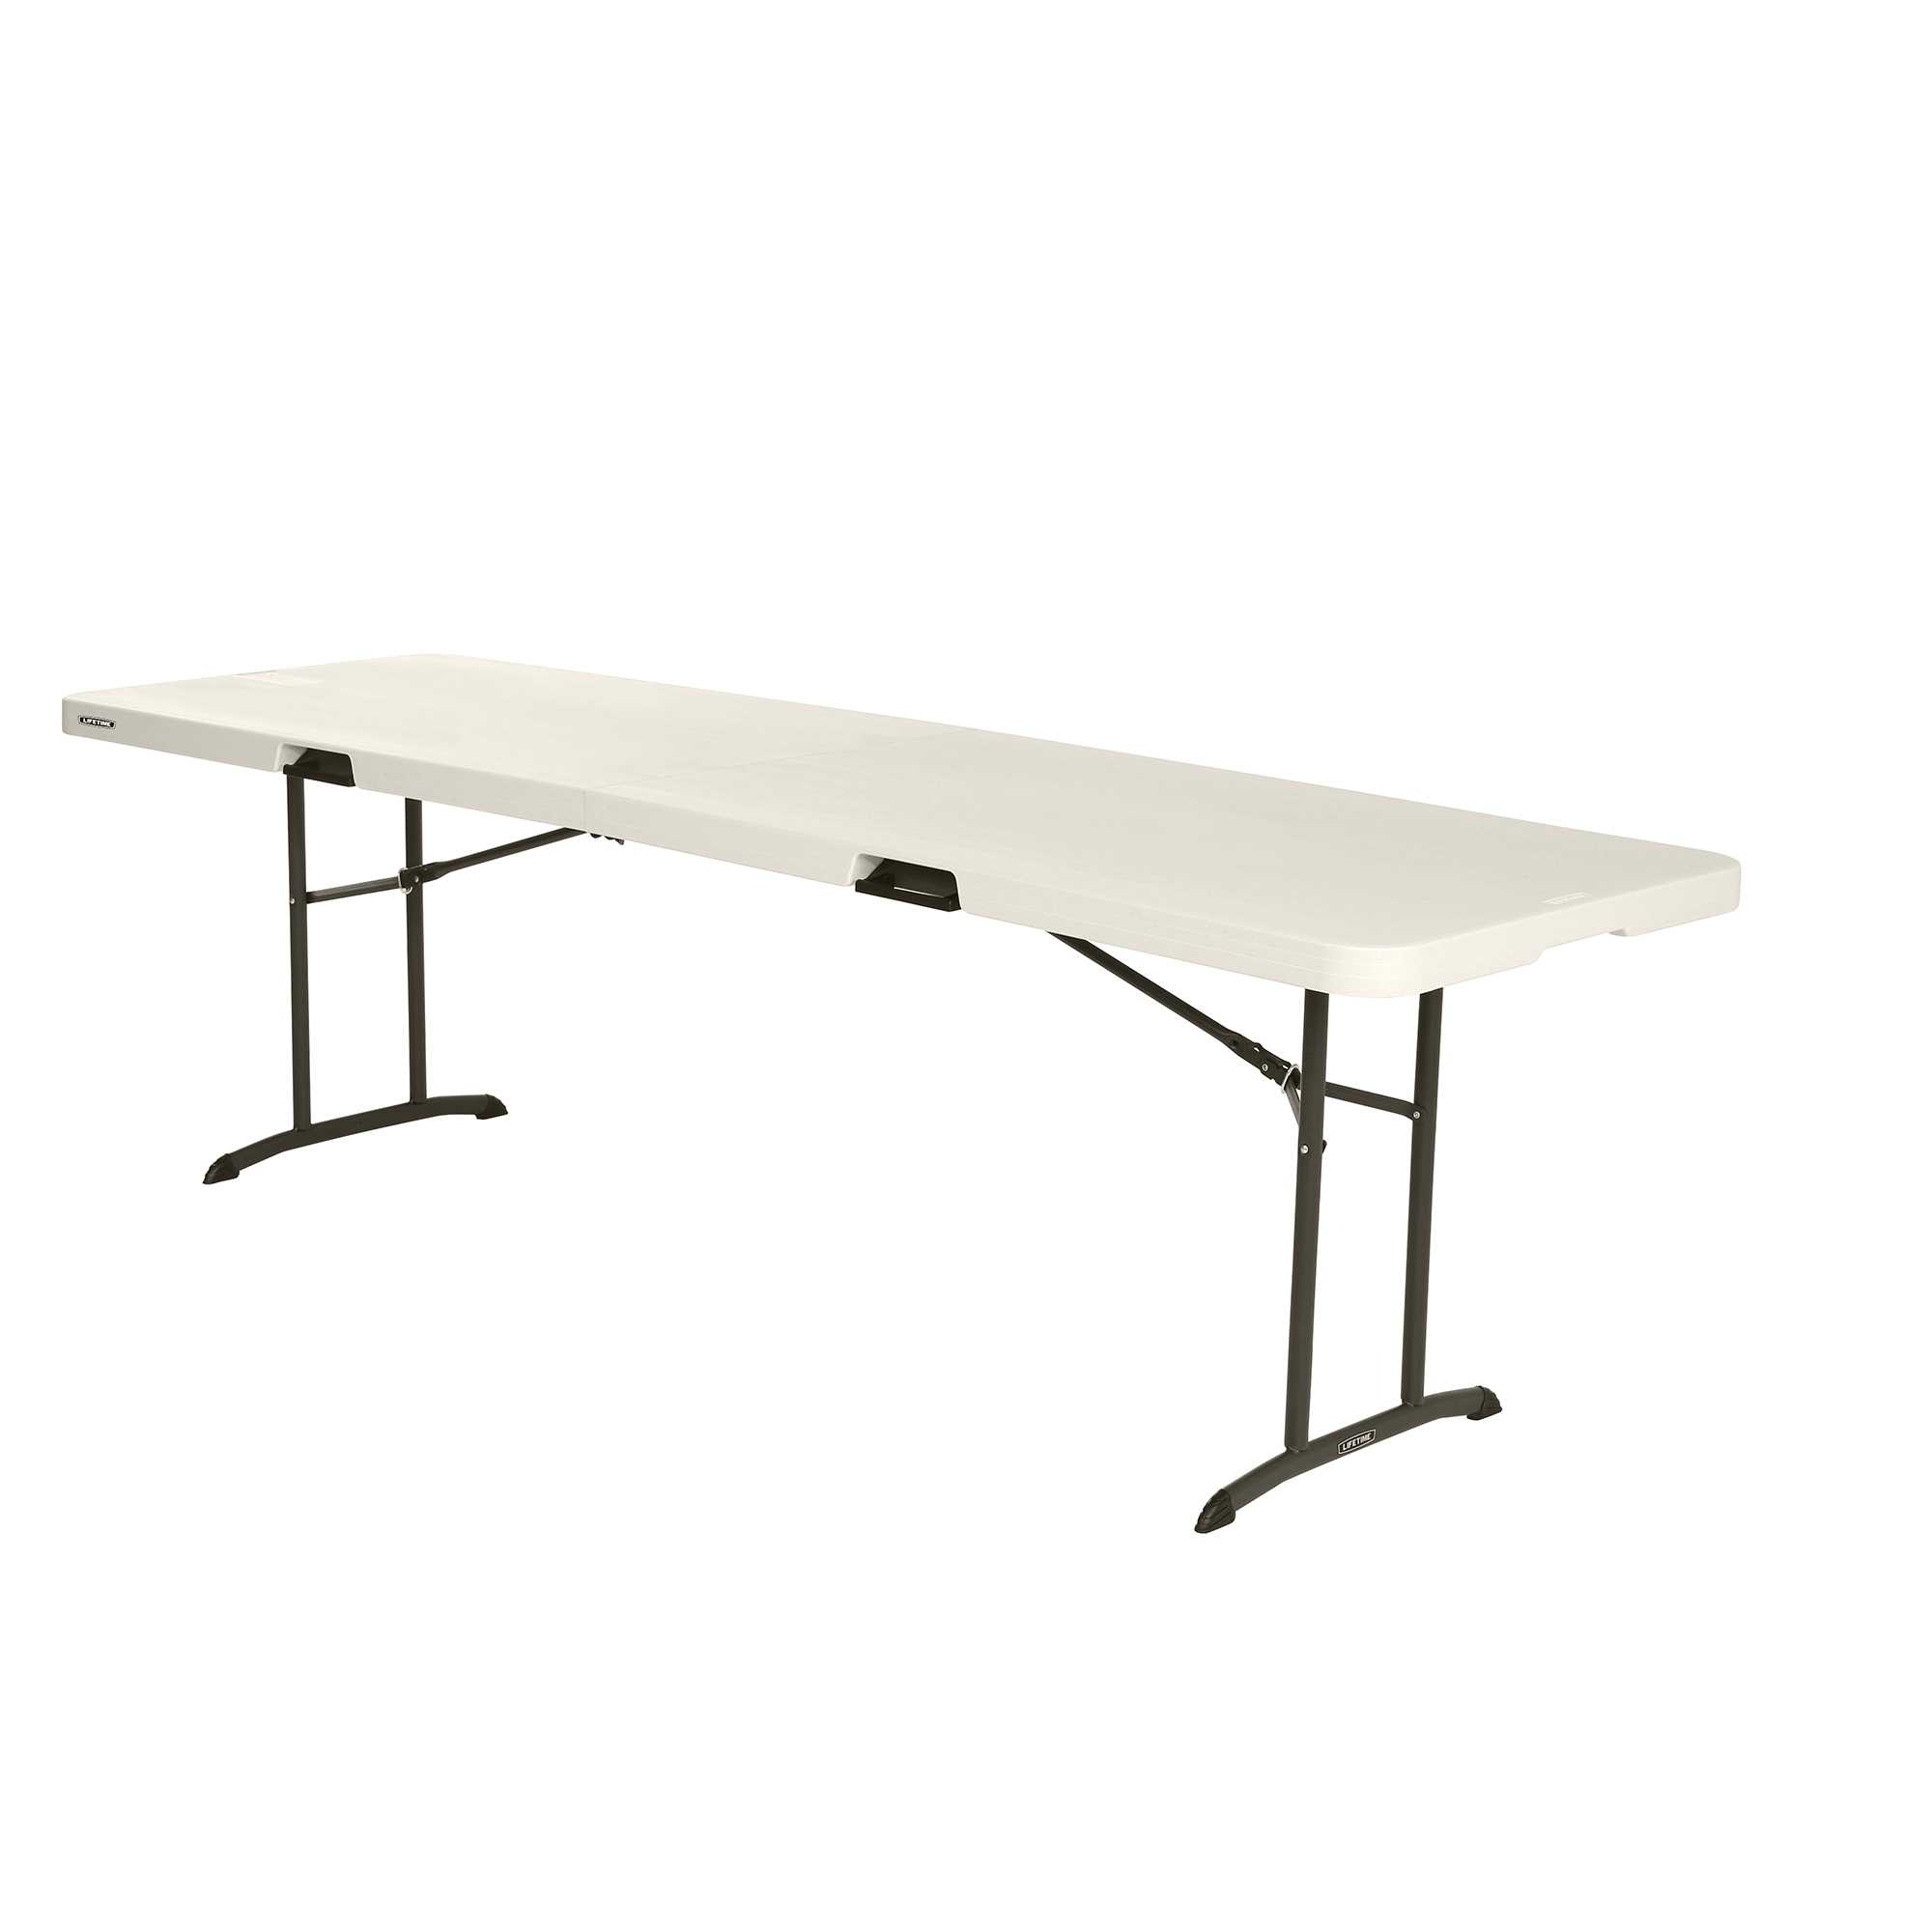 Lifetime 8-Foot Fold-In-Half Table (Commercial)